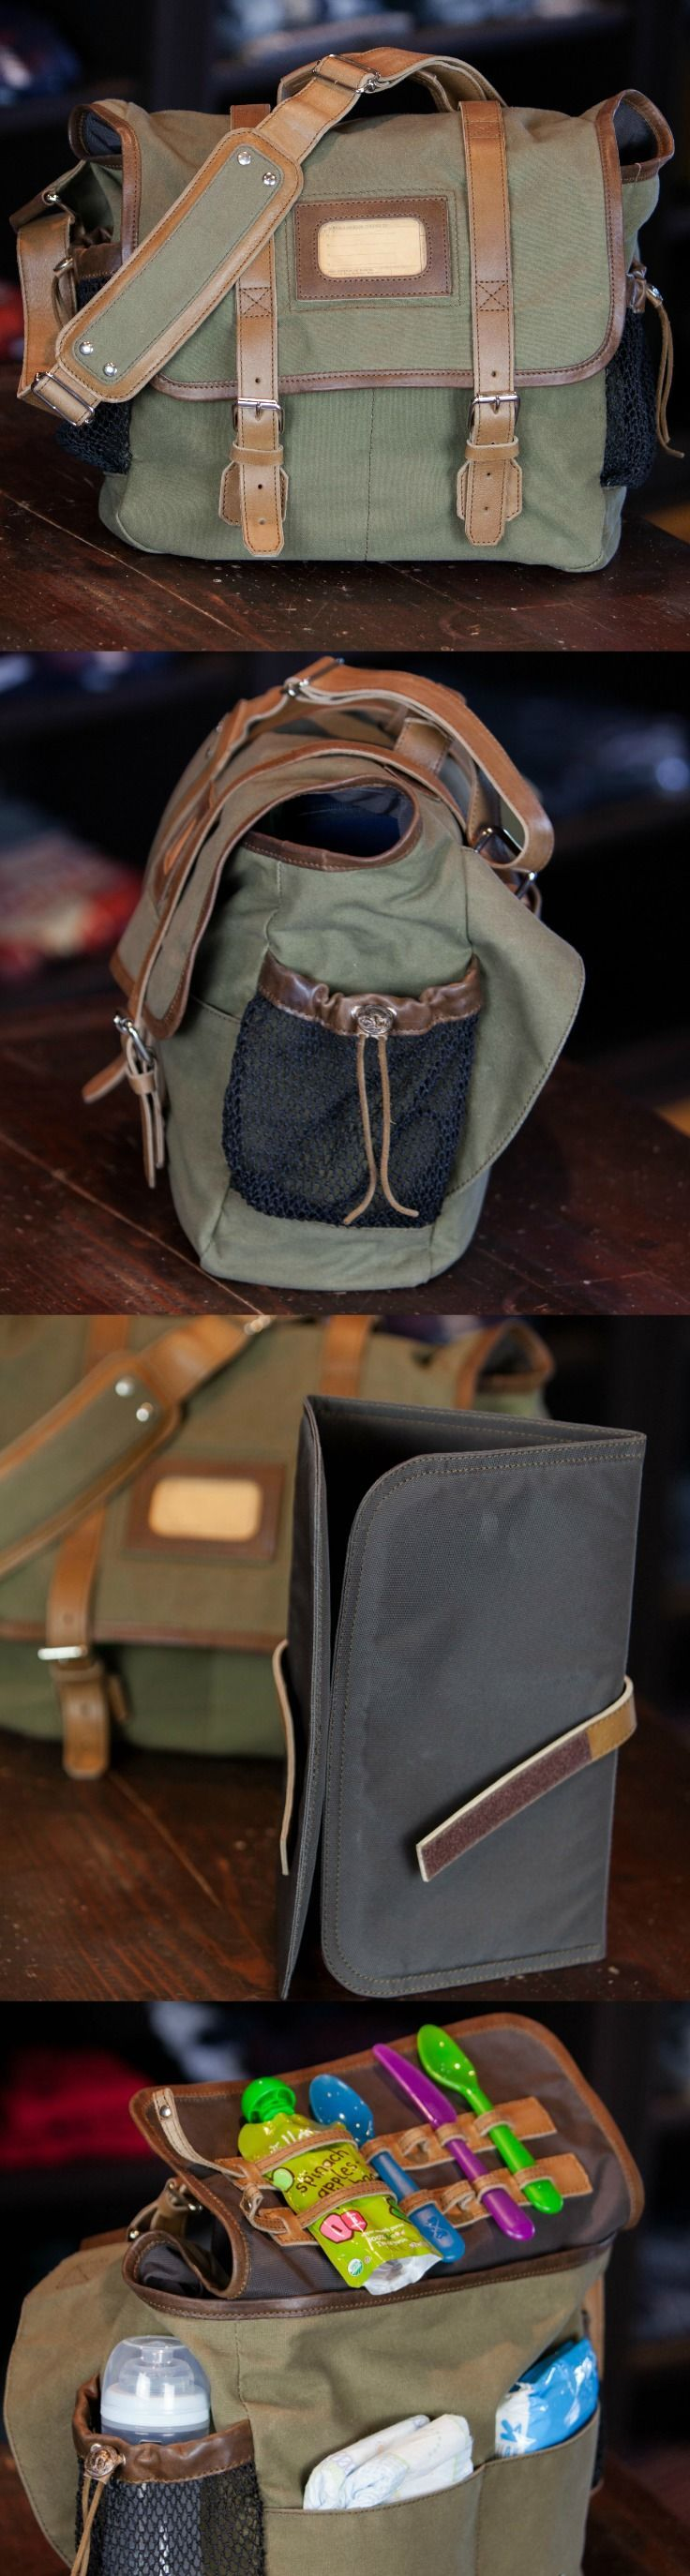 Perfect first Father's day gift: the manliest diaper bag you've ever seen. The Elkton waxed canvas mens diaper bag. Removable nylon changing pad, fish net bottle holders, adjustable leather strap. diaper bag for dad | diaper bags that don't suck